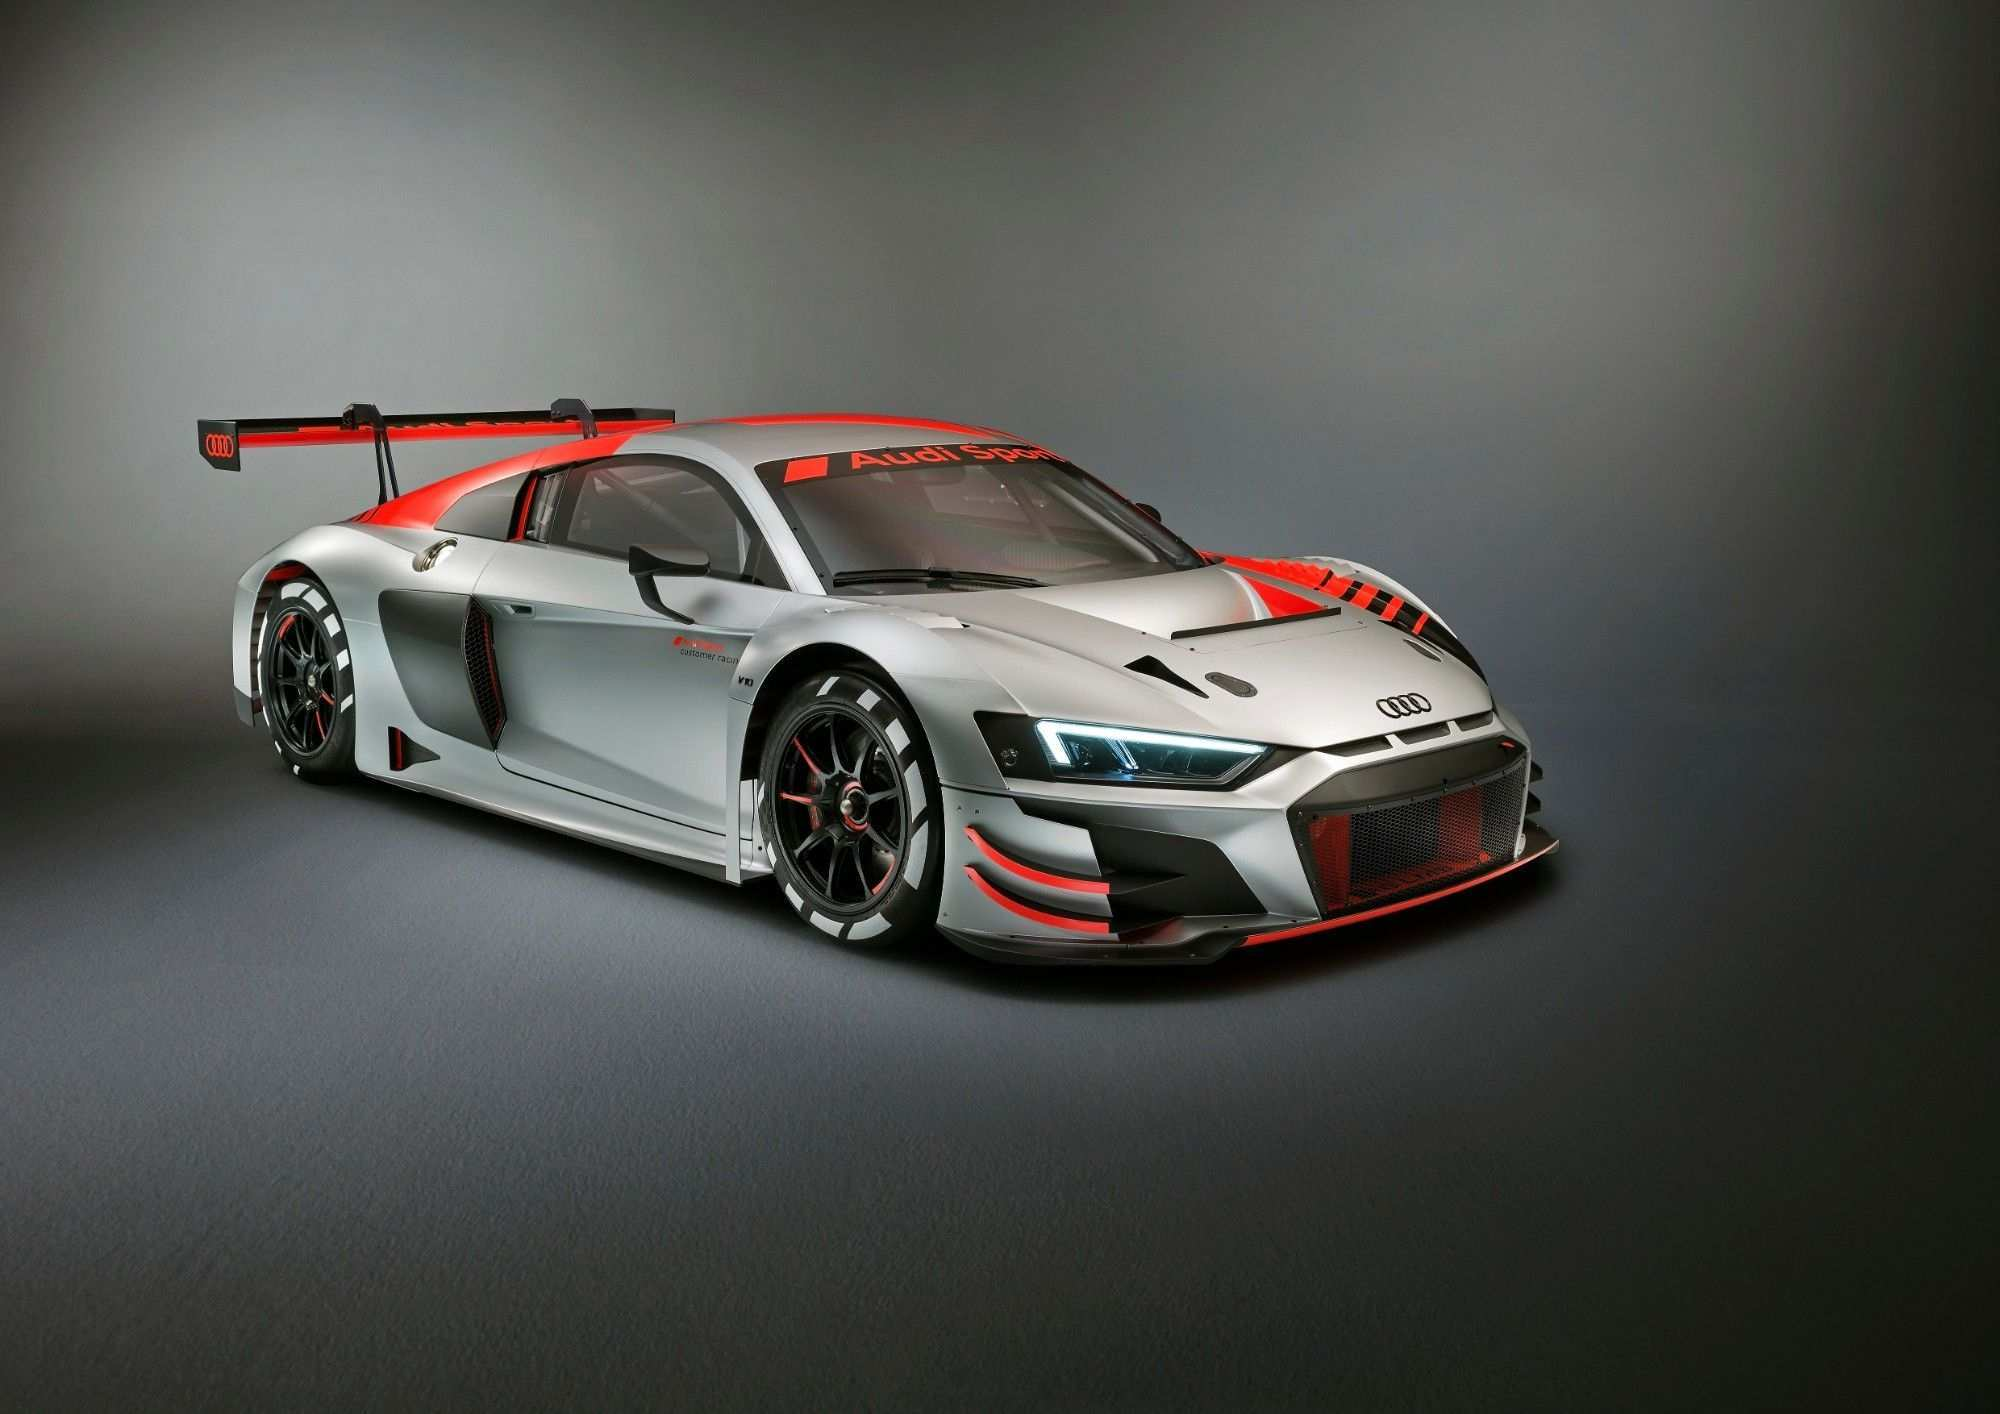 28 Gallery of The Audi Le Mans 2019 Release Specs And Review New Review for The Audi Le Mans 2019 Release Specs And Review